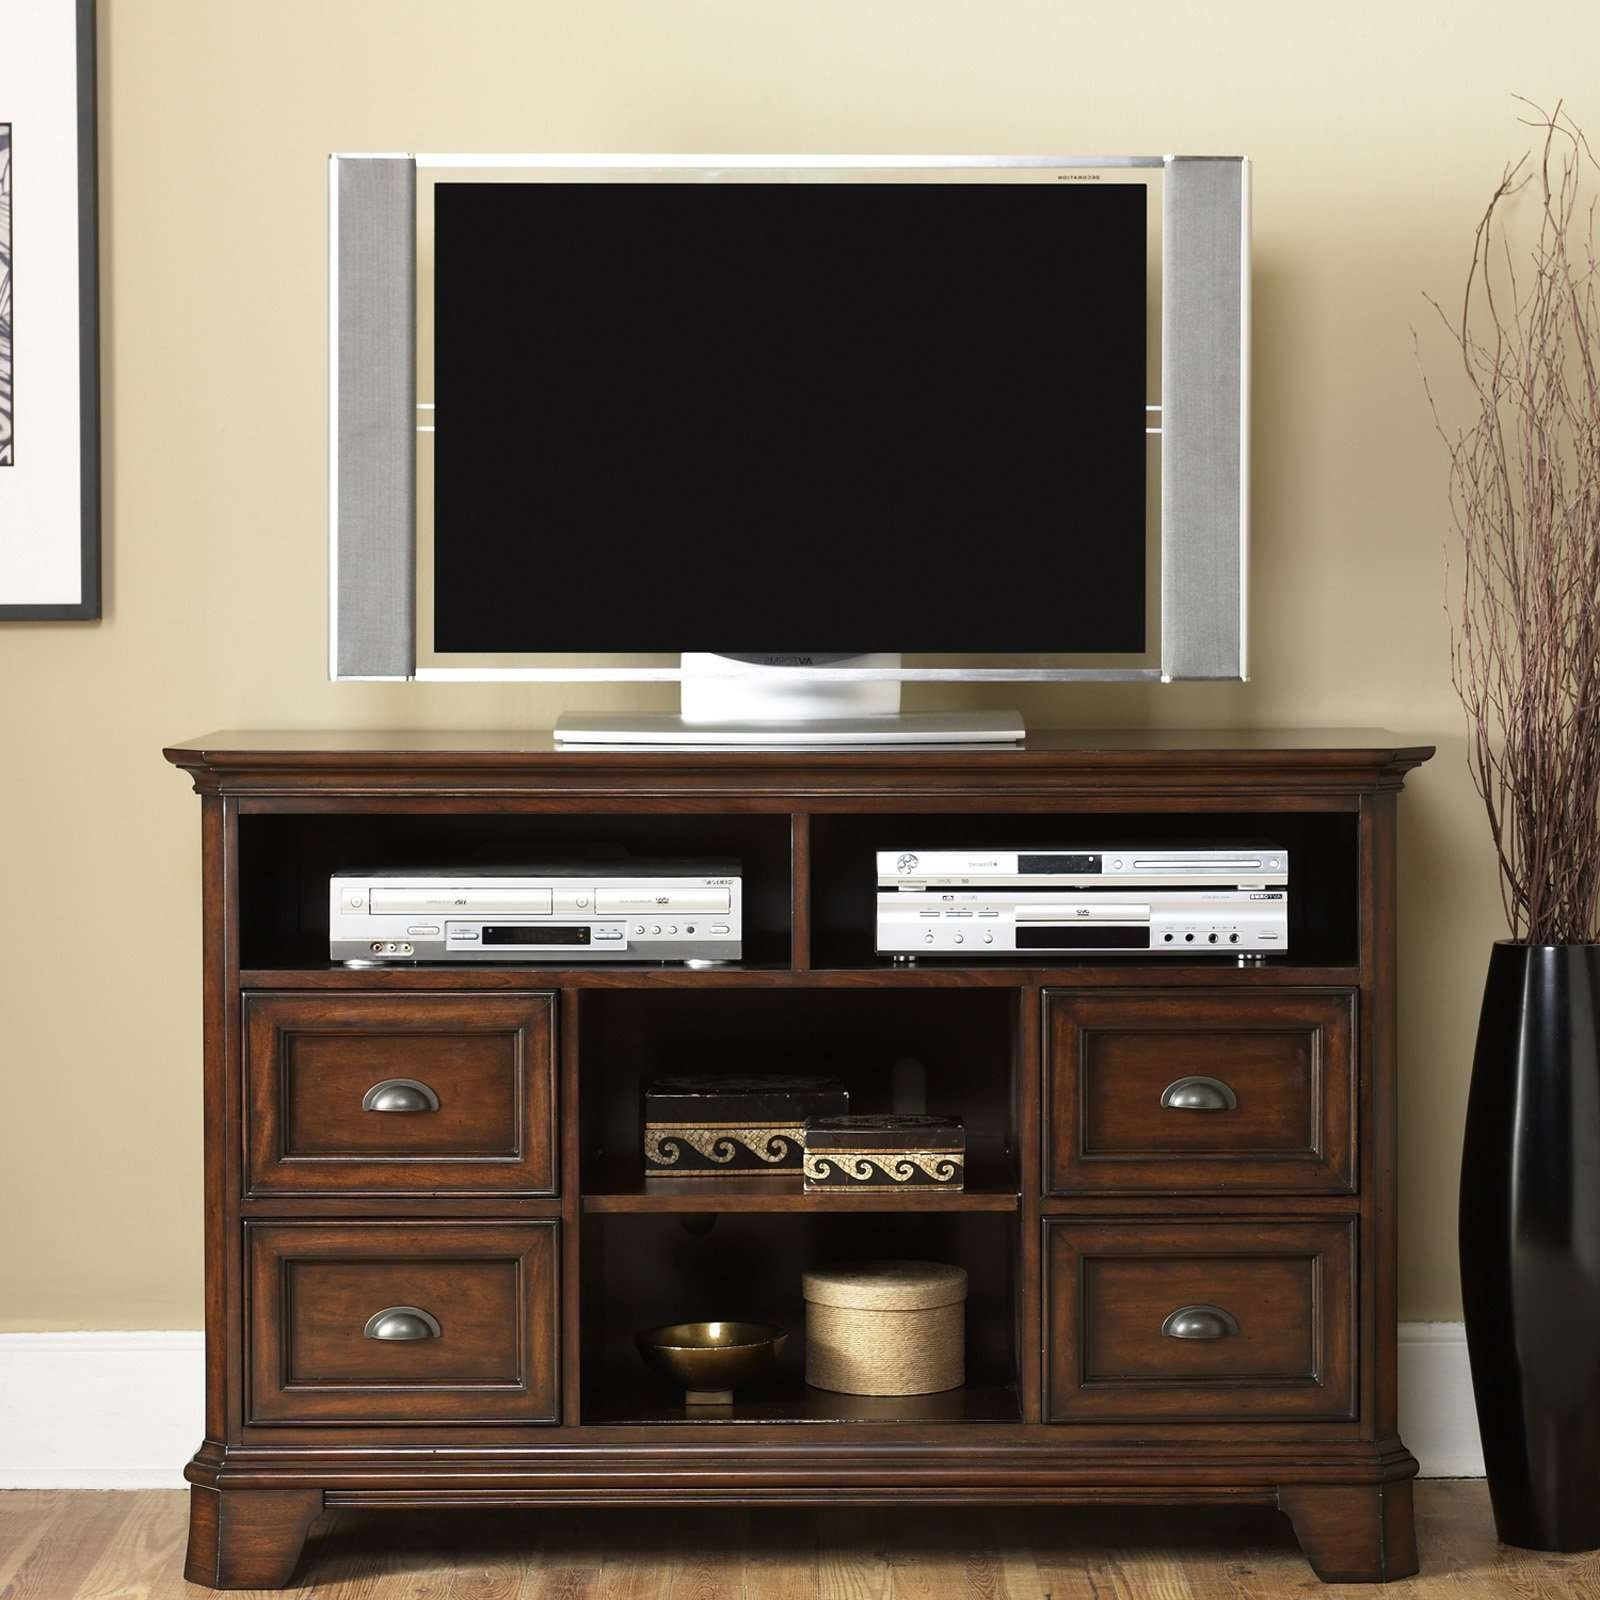 Bedroom Design : Awesome Small Corner Tv Stand Wooden Tv Stands 32 Regarding 32 Inch Corner Tv Stands (View 1 of 15)